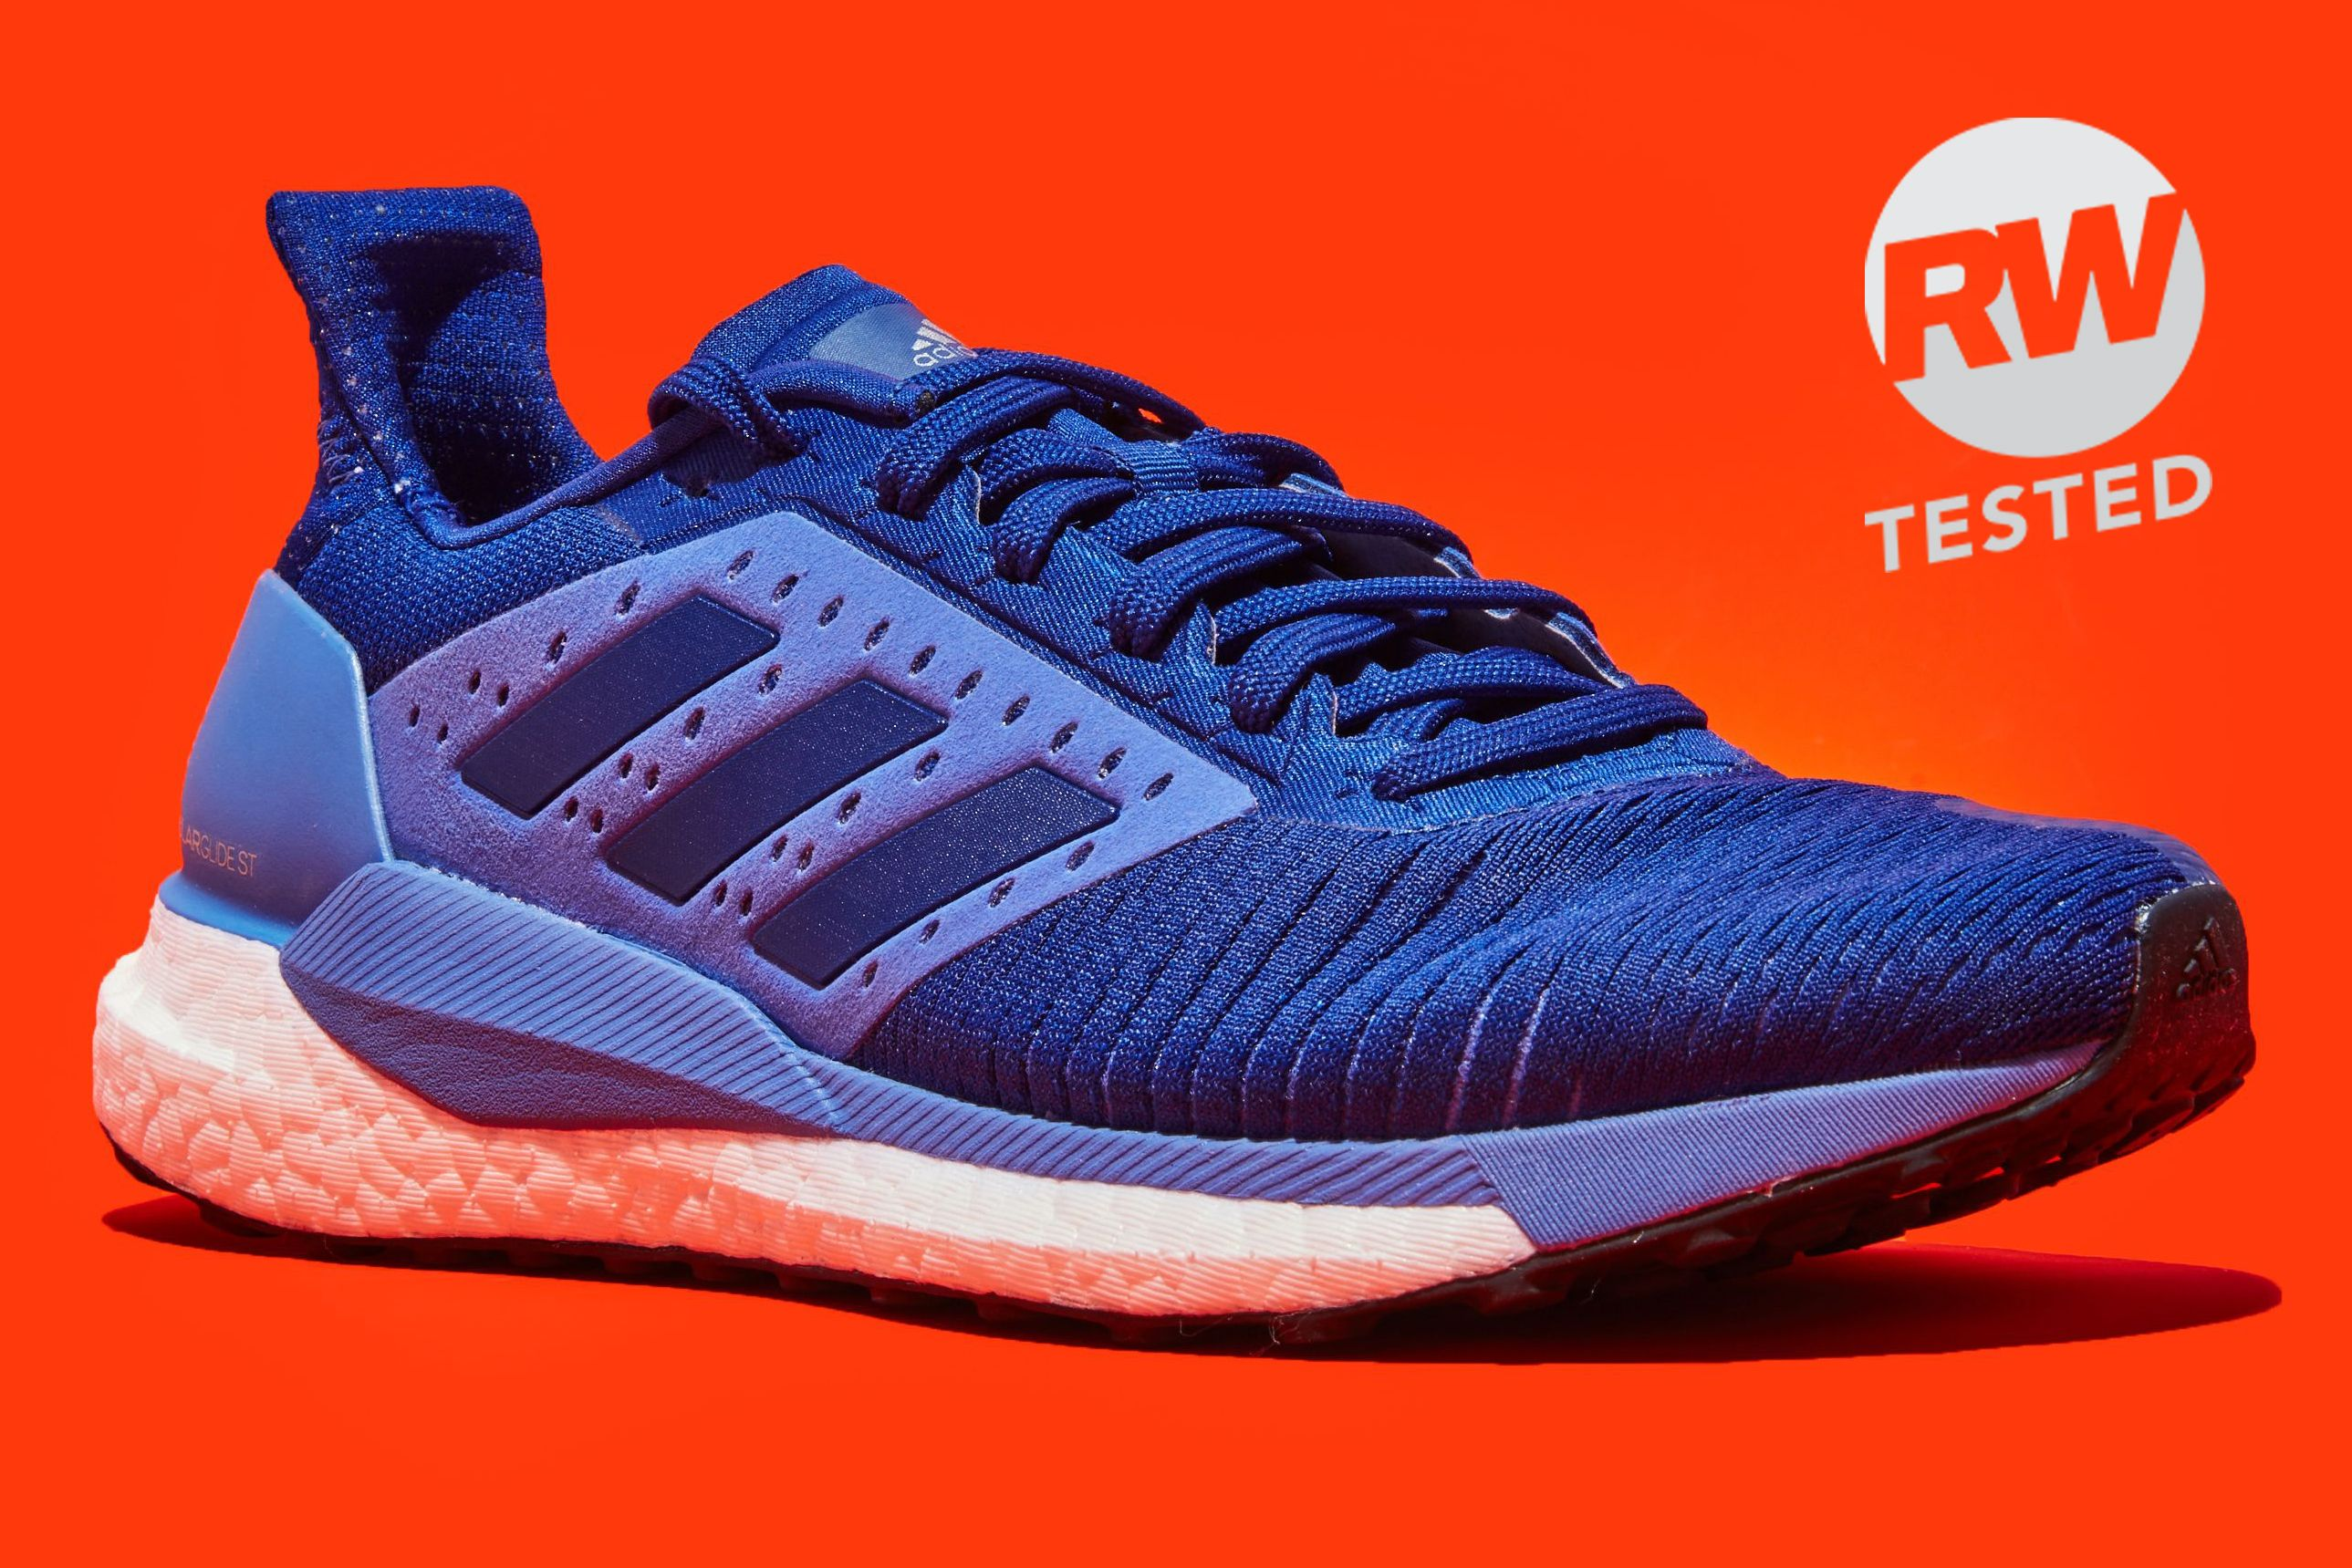 The Adidas Solar Glide ST Provides